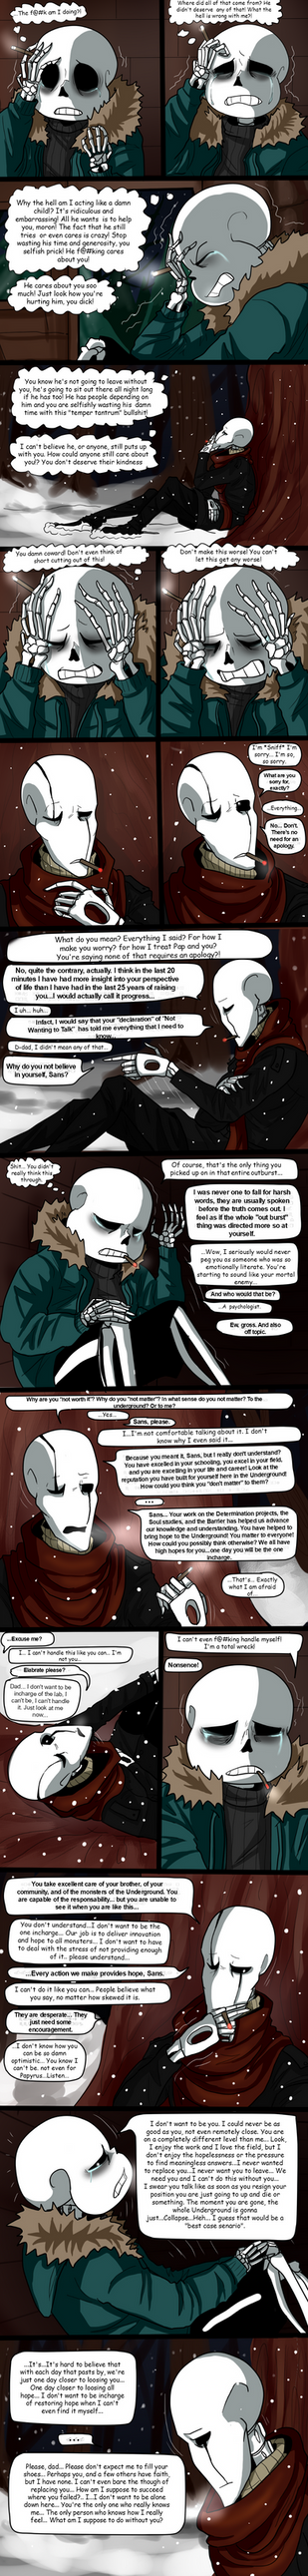 Bad Day part 2- page 3